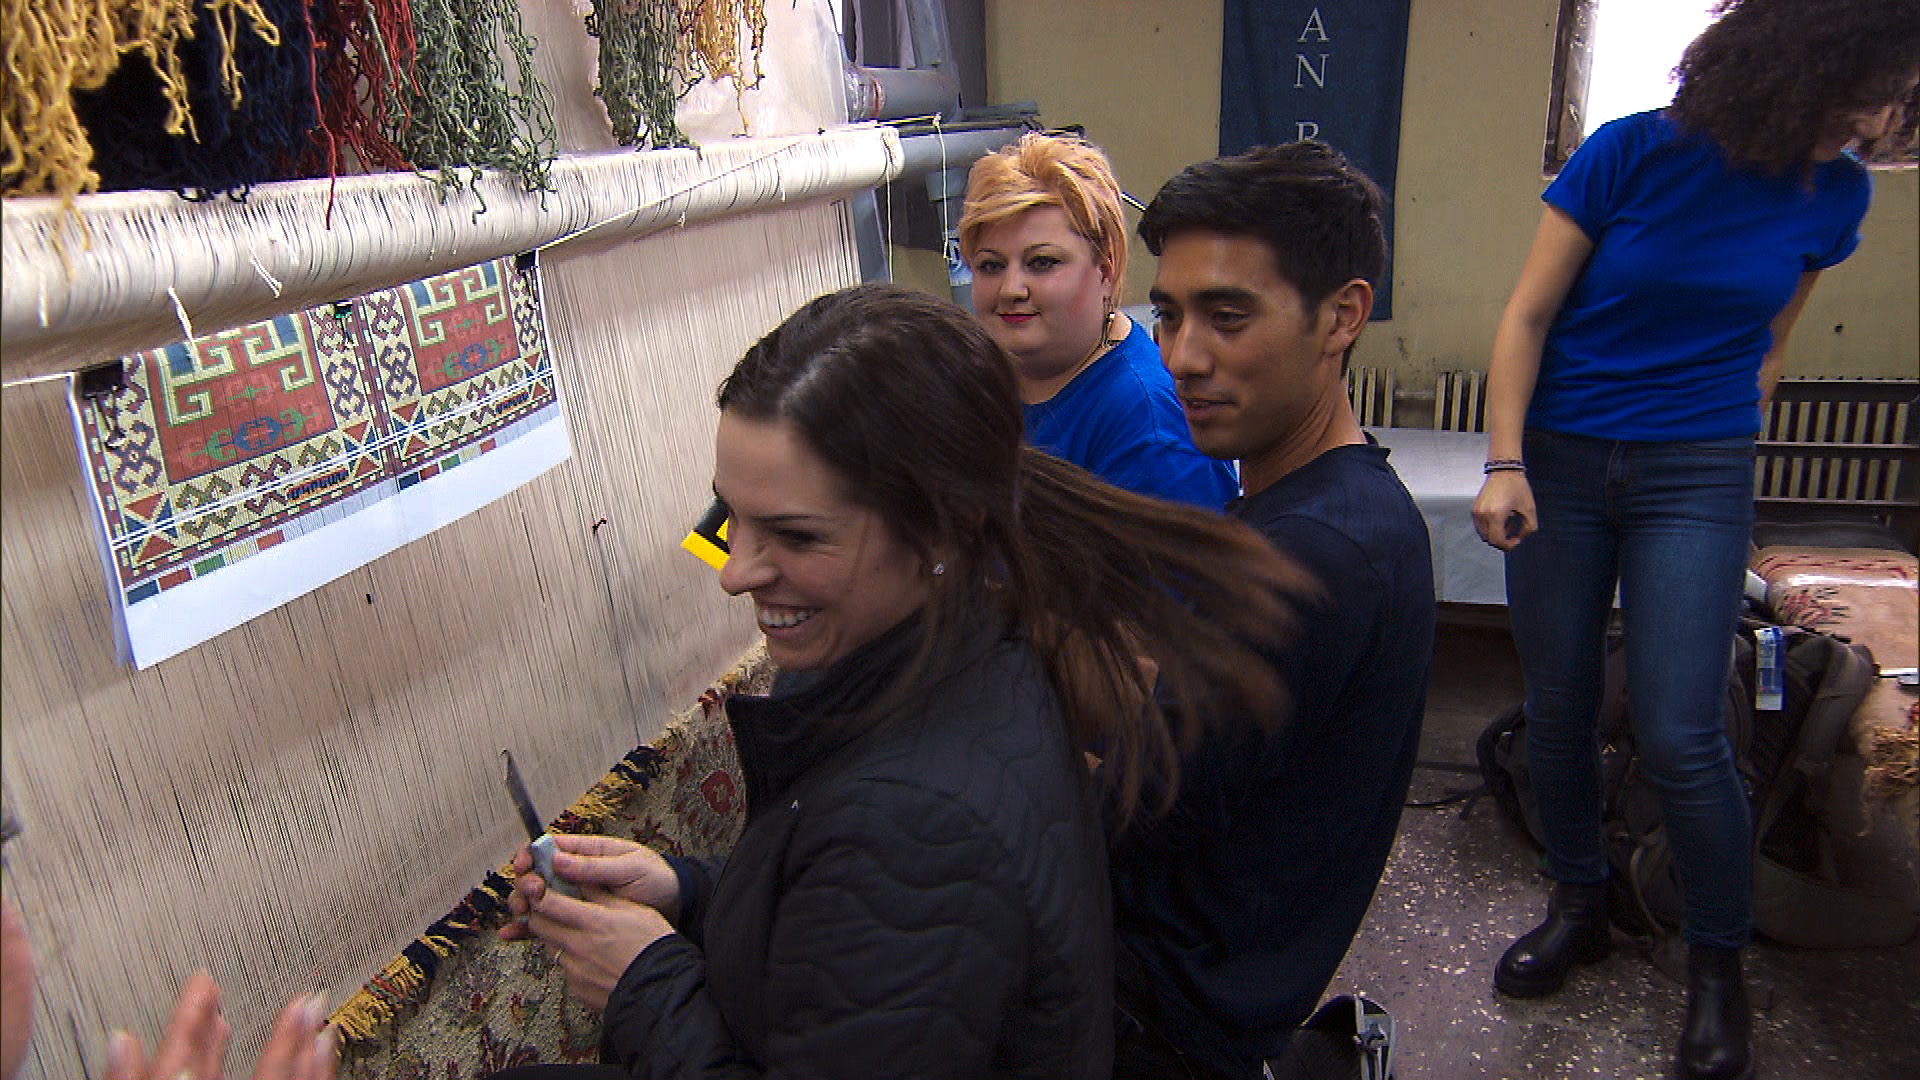 In Detour A, Rachel and Zach try to correctly weave a marked section of carpet.